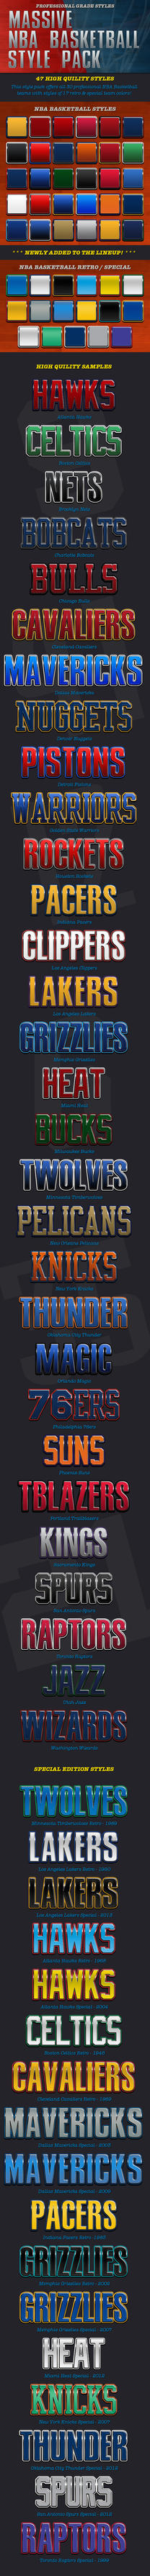 30 NBA Basketball Team Plus Extra Color Styles by caligrafx